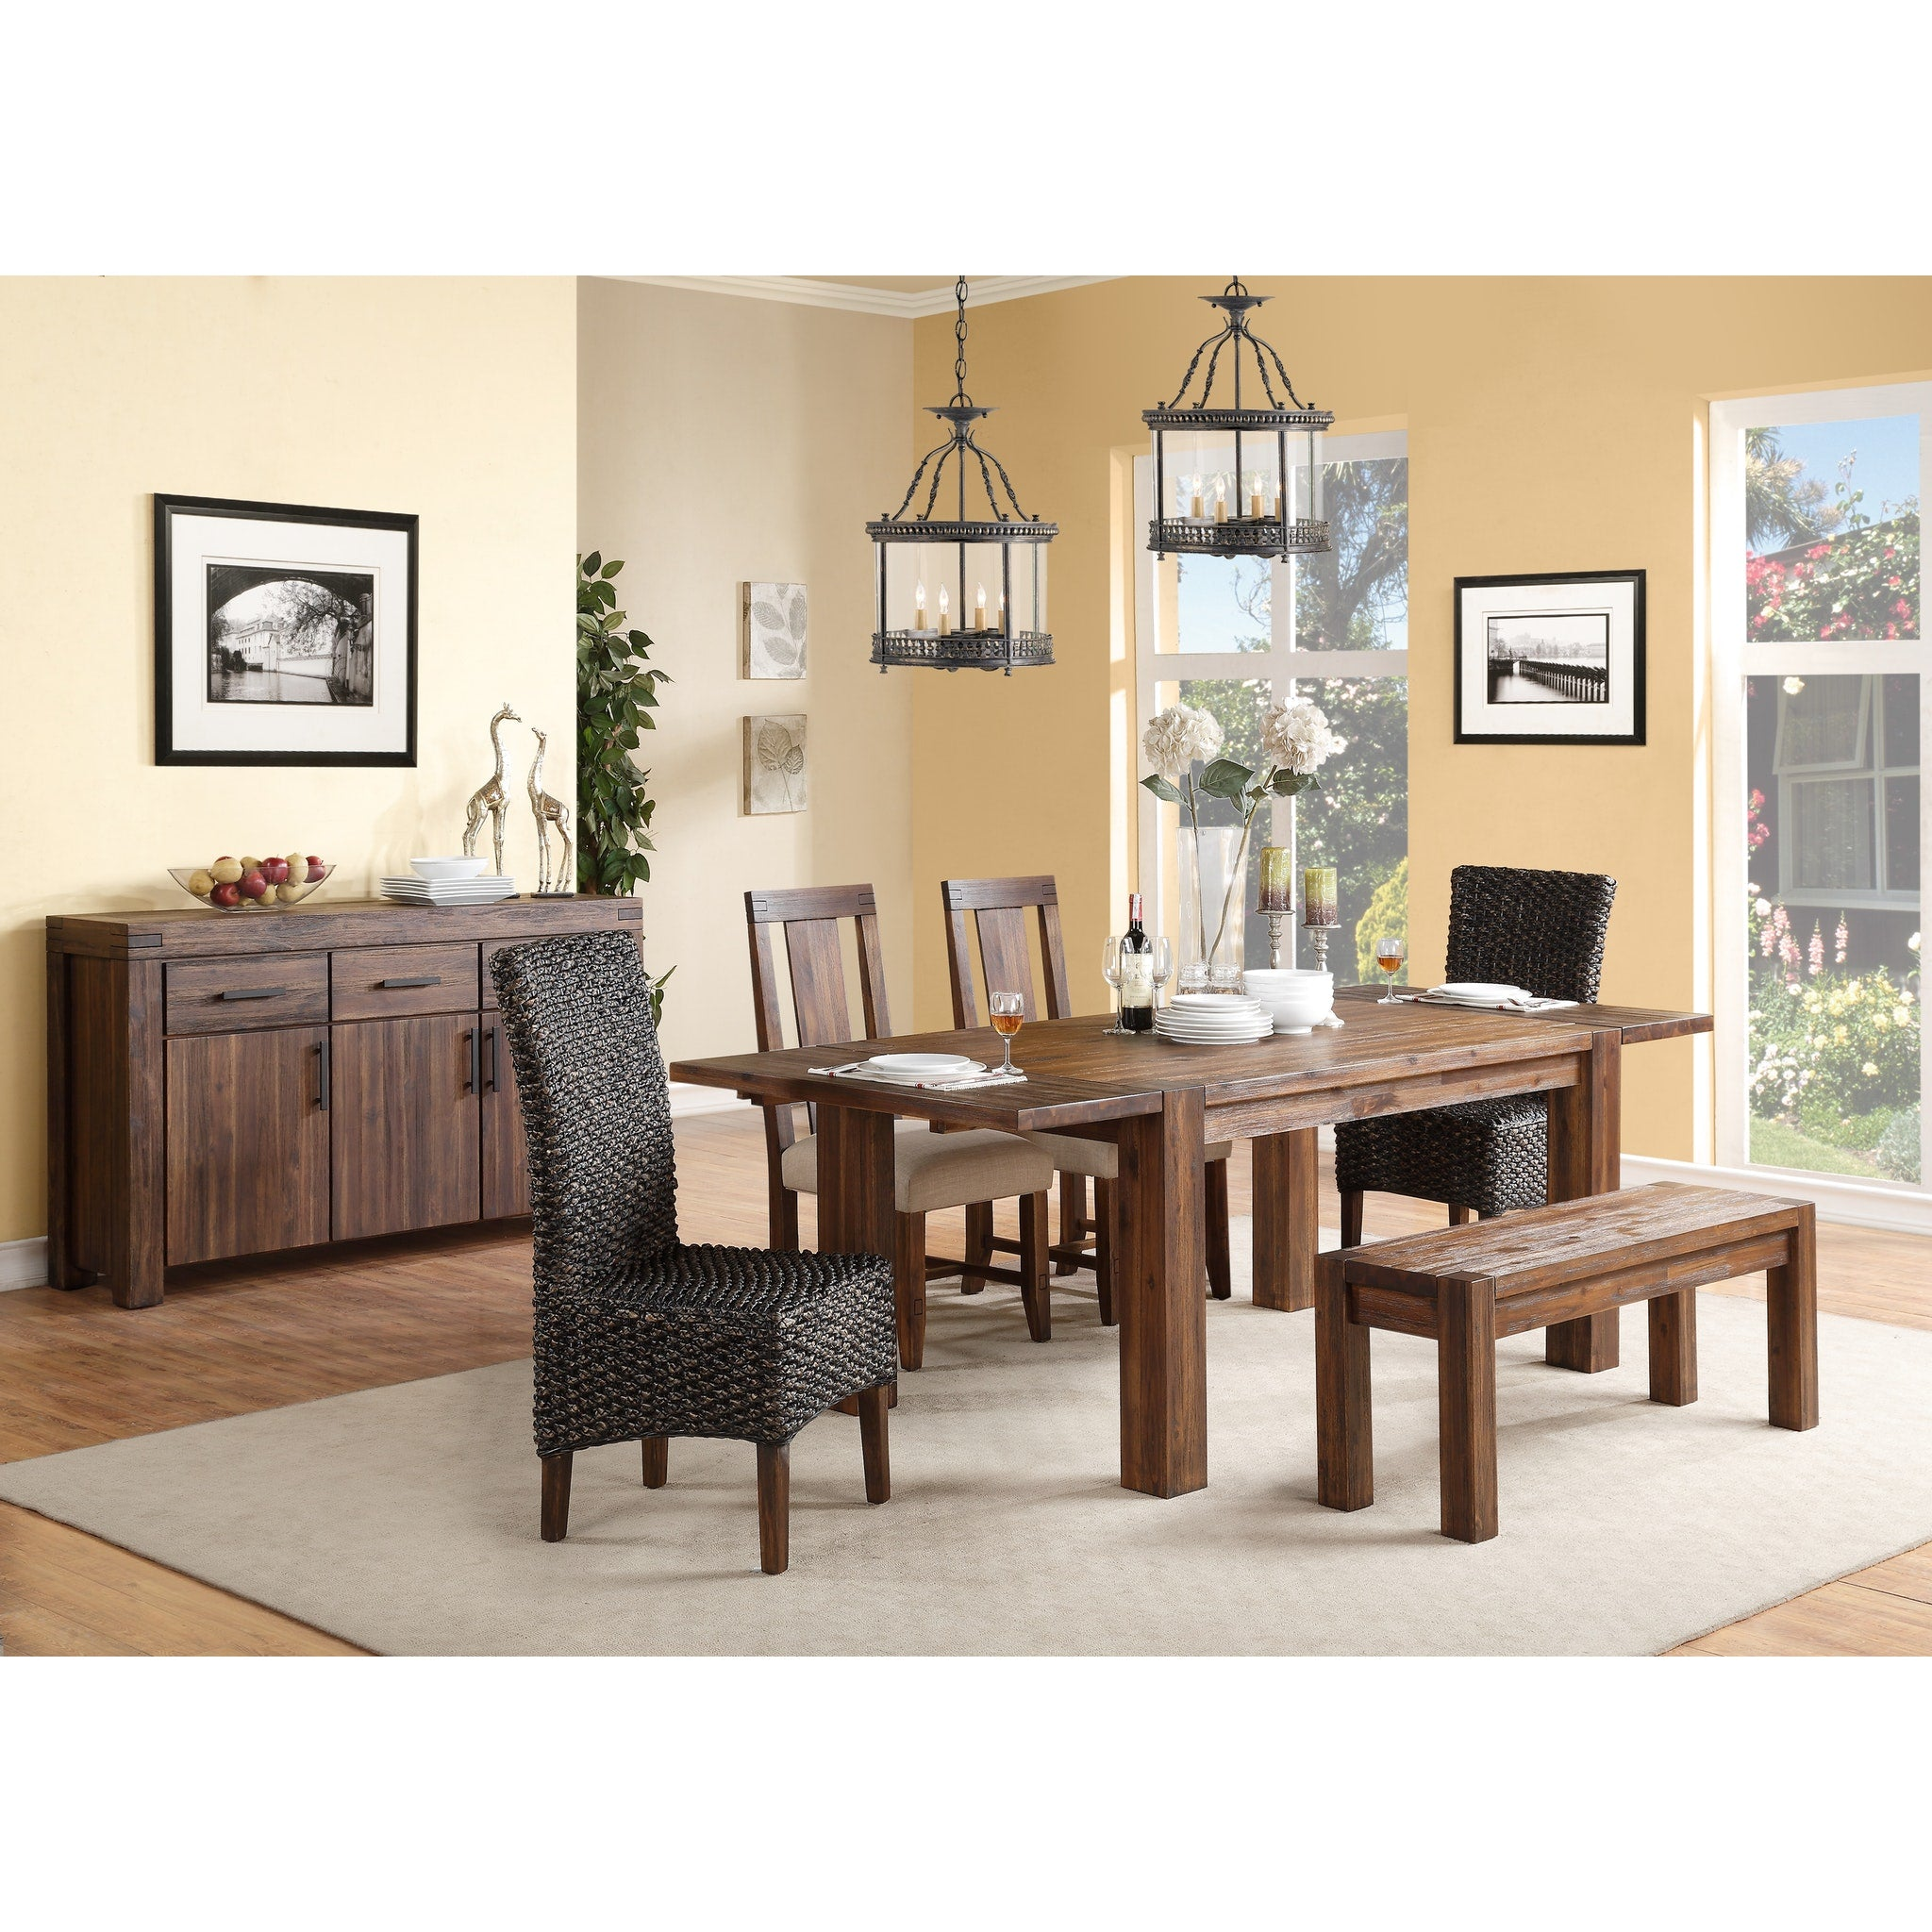 Meadow Solid Wood Extending Dining Table in Brick Brown